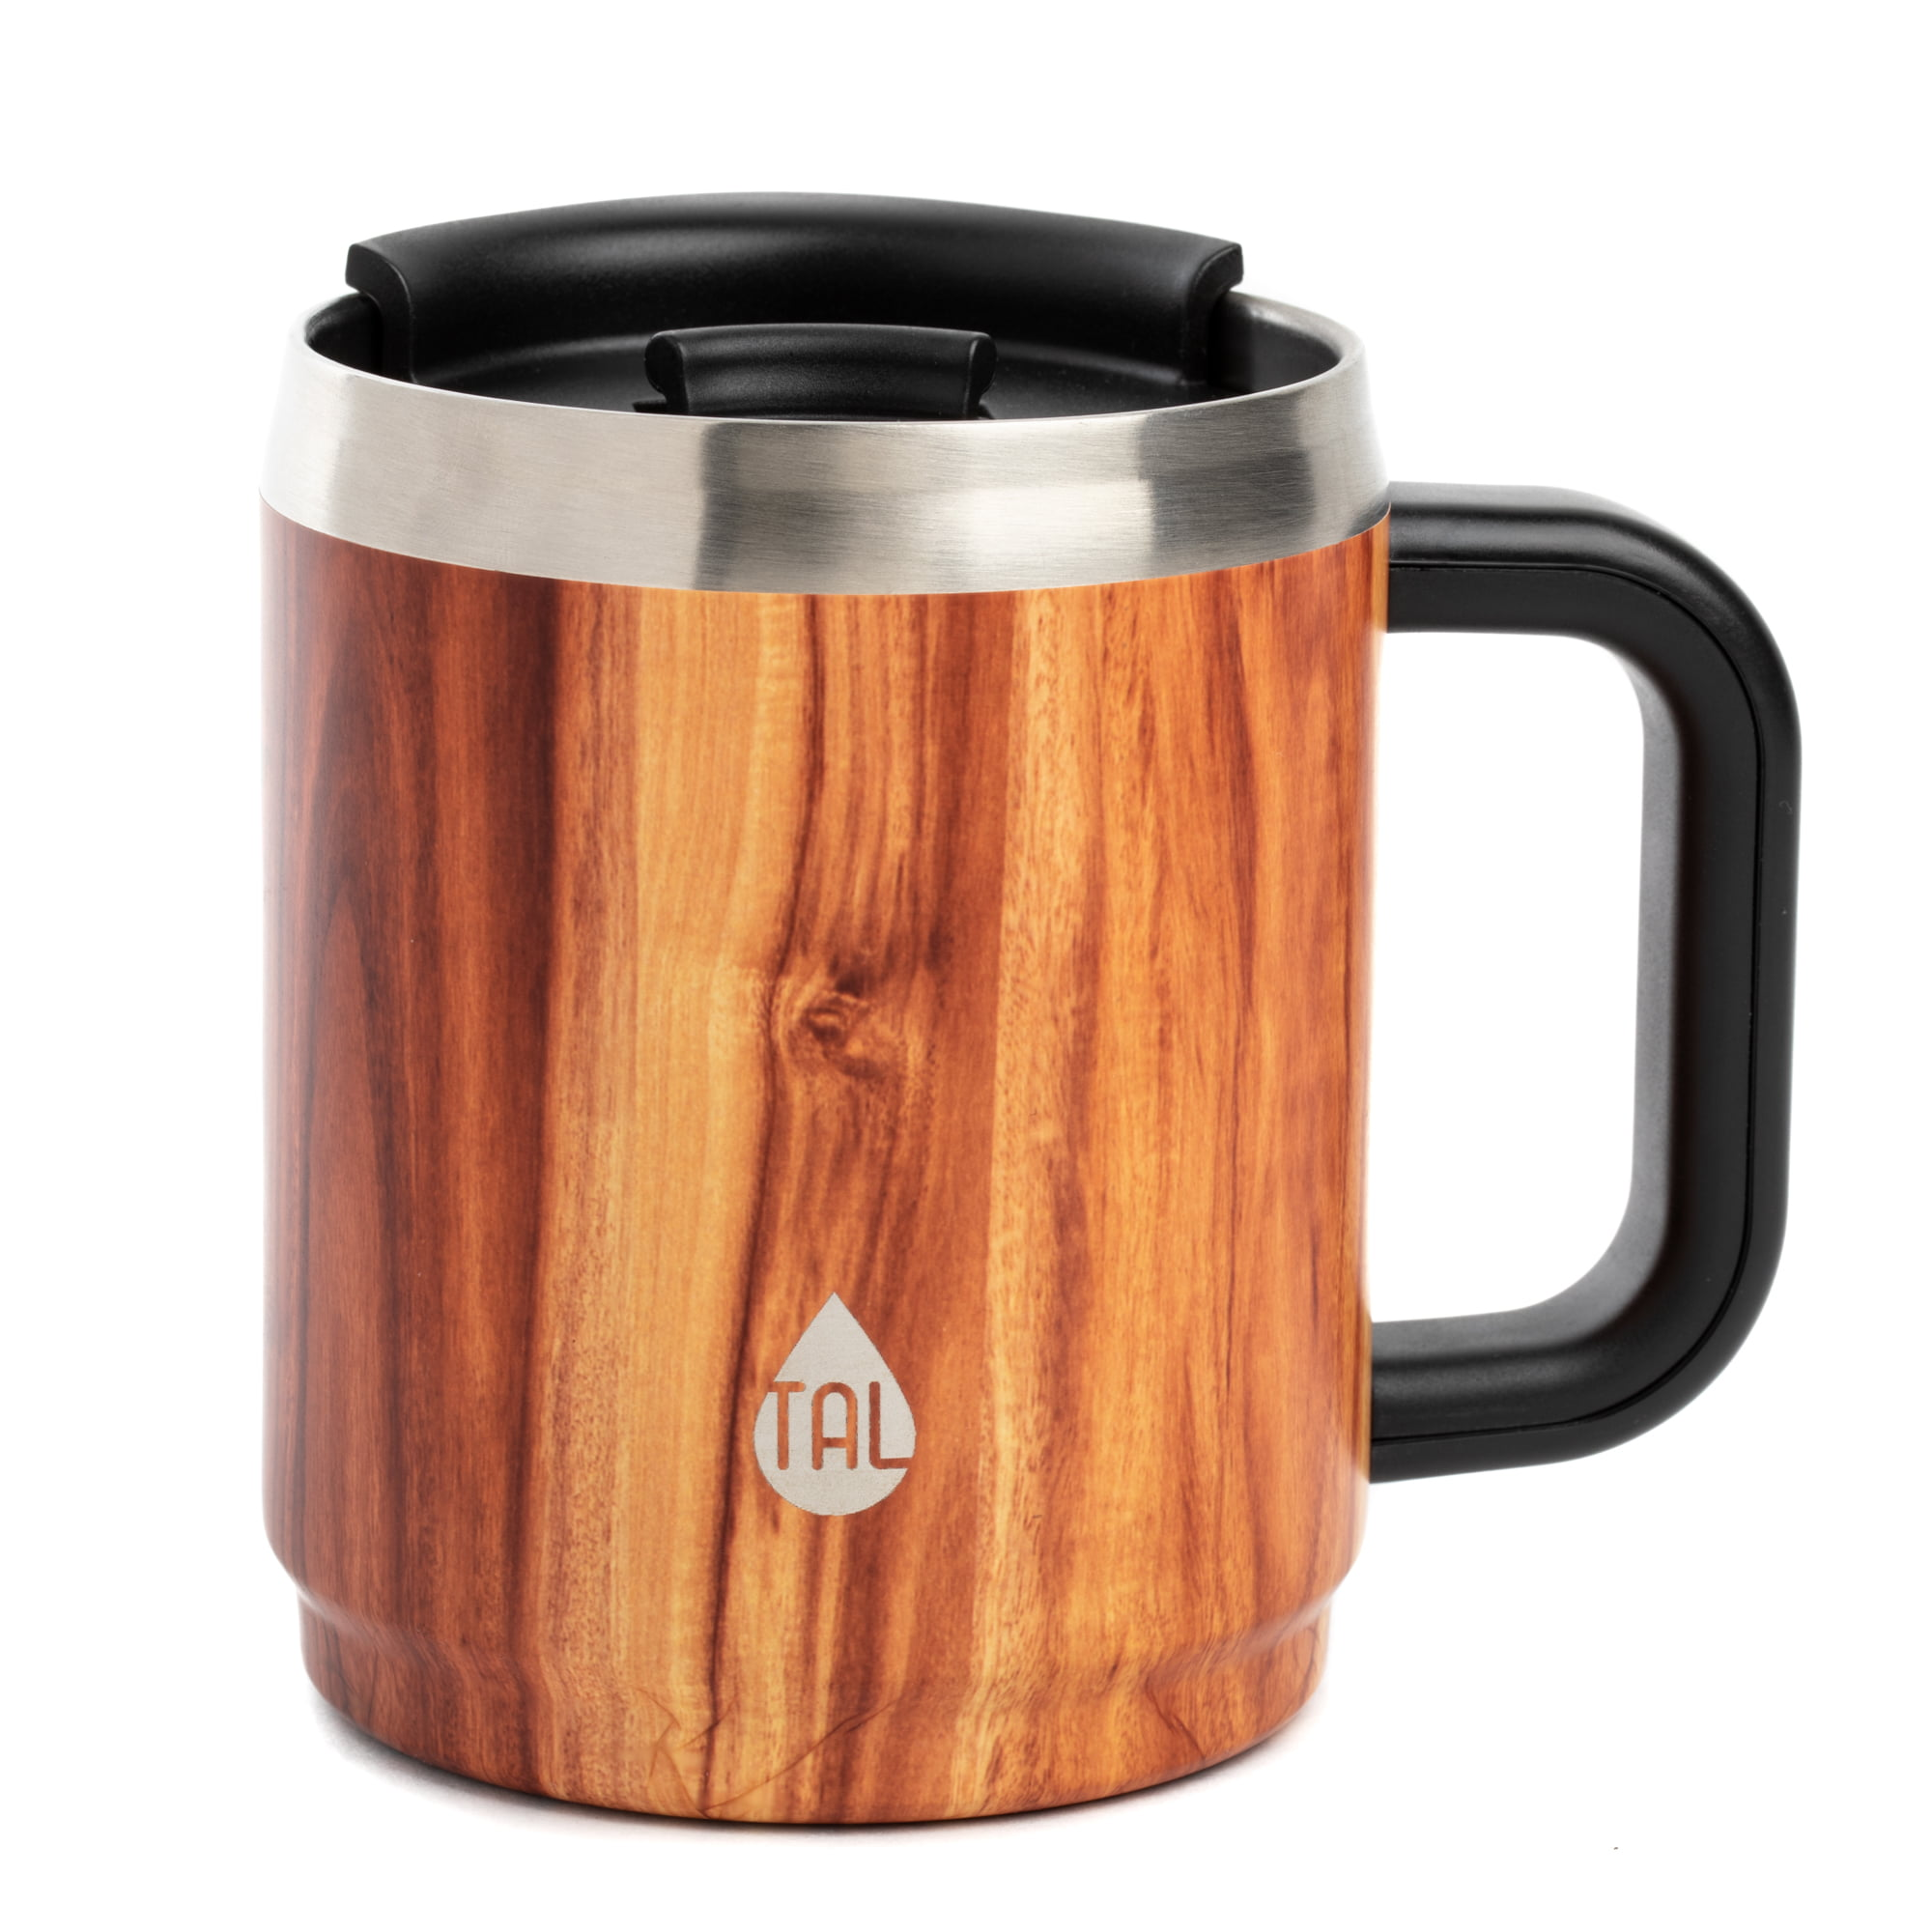 Tal Double Wall Insulated Stainless Steel Boulder Mug 14oz Wood Walmart Com Walmart Com